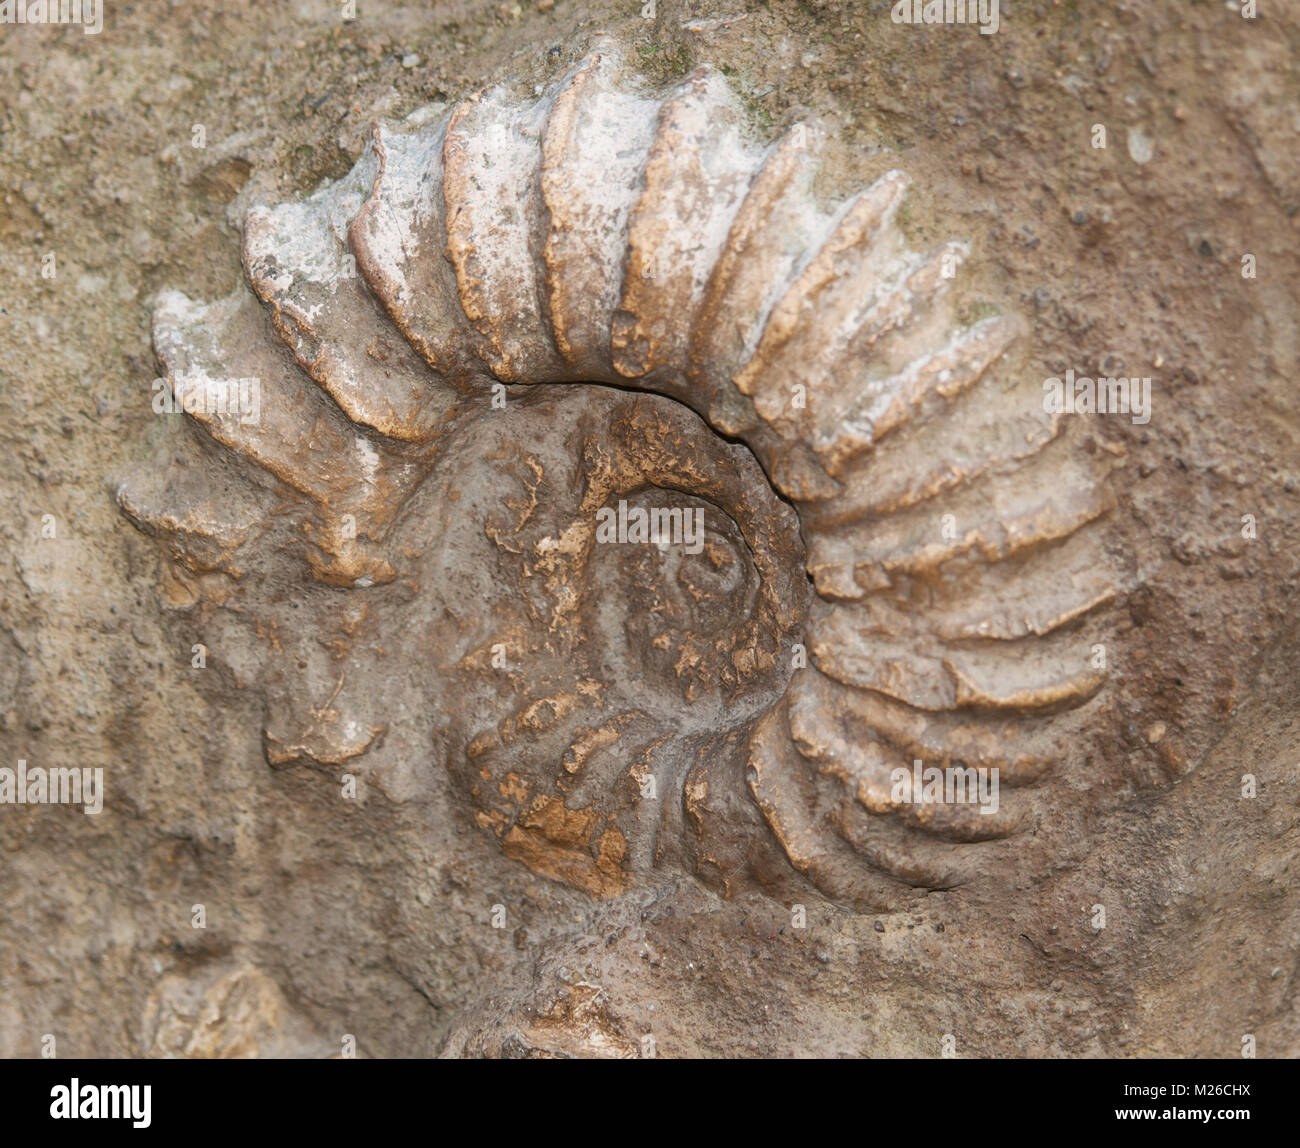 Scaphites fossil - genus of extinct cephalopod - Stock Image